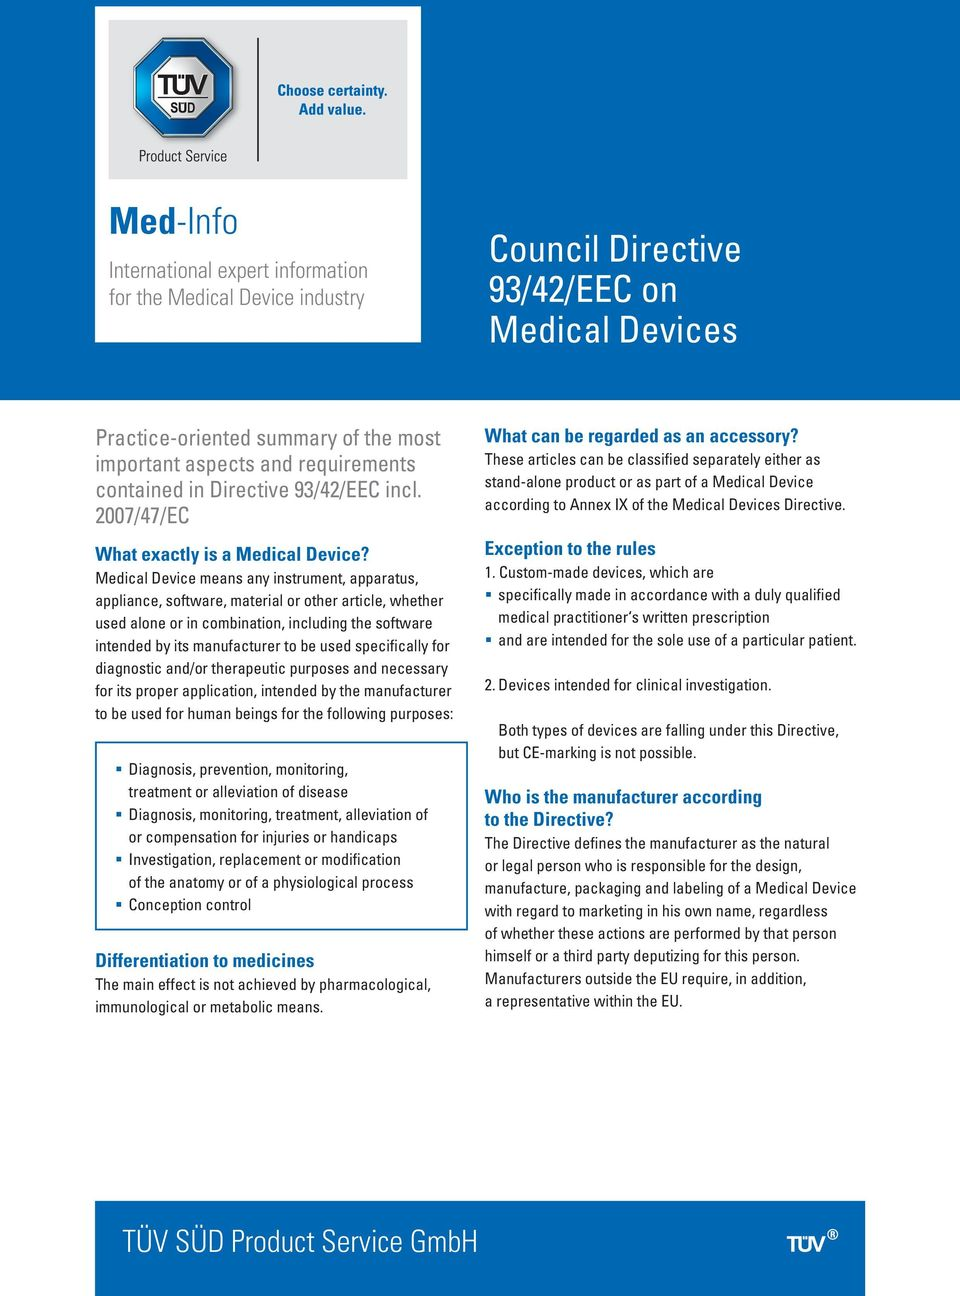 Medical Device means any instrument, apparatus, appliance, software, material or other article, whether used alone or in combination, including the software intended by its manufacturer to be used